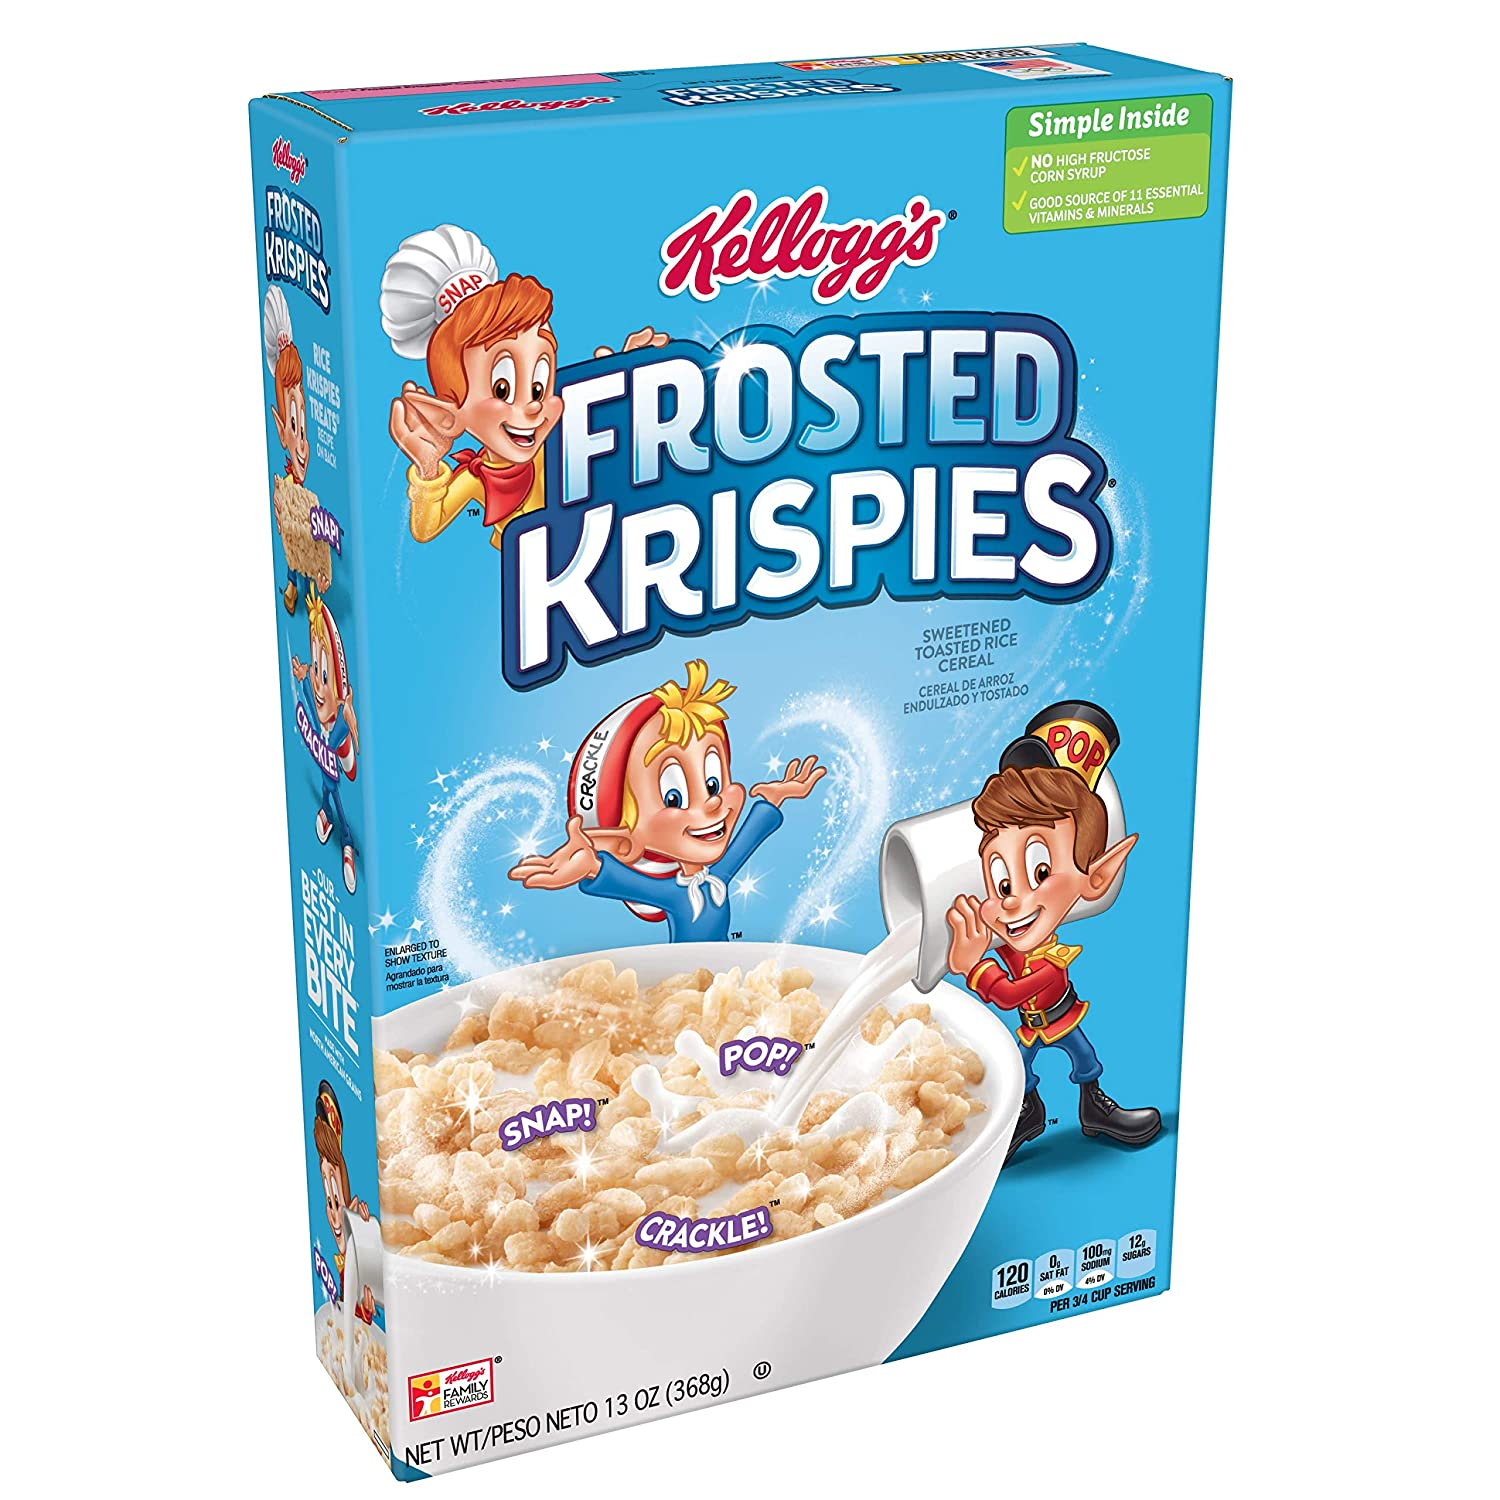 Rice Krispies Kellogg's Fat-Free Frosted Krispies Breakfast Cereal, Toasted Rice Cereal, 13 Ounce, Pack of 16